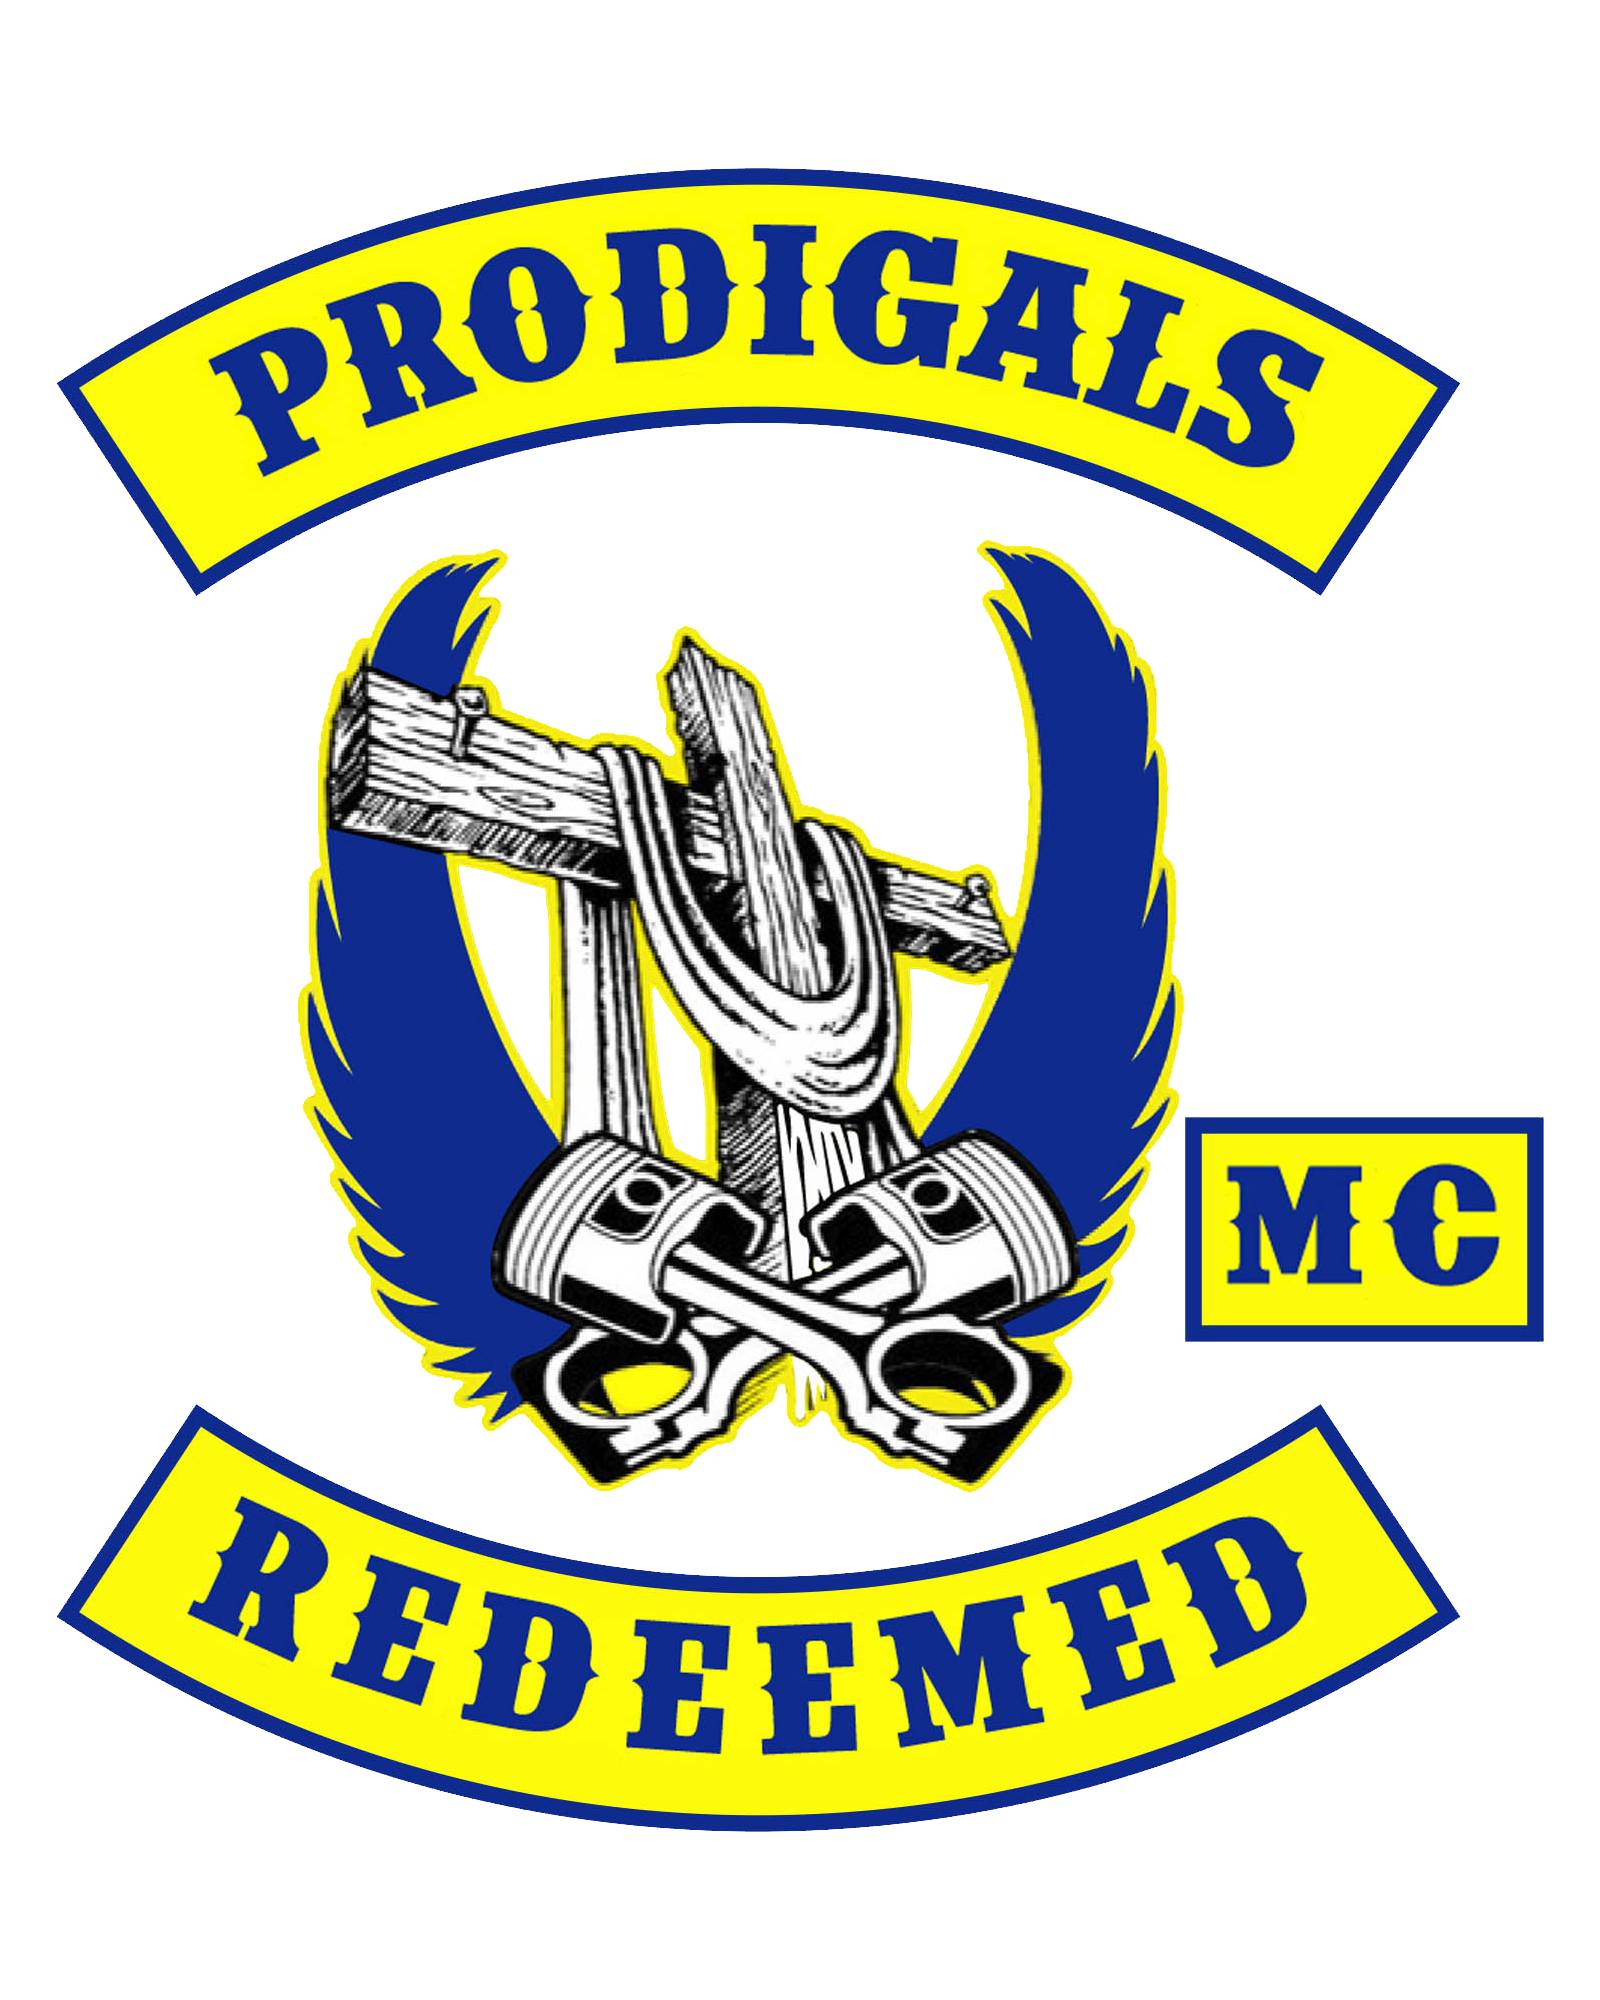 Prodigals Redeemed MC